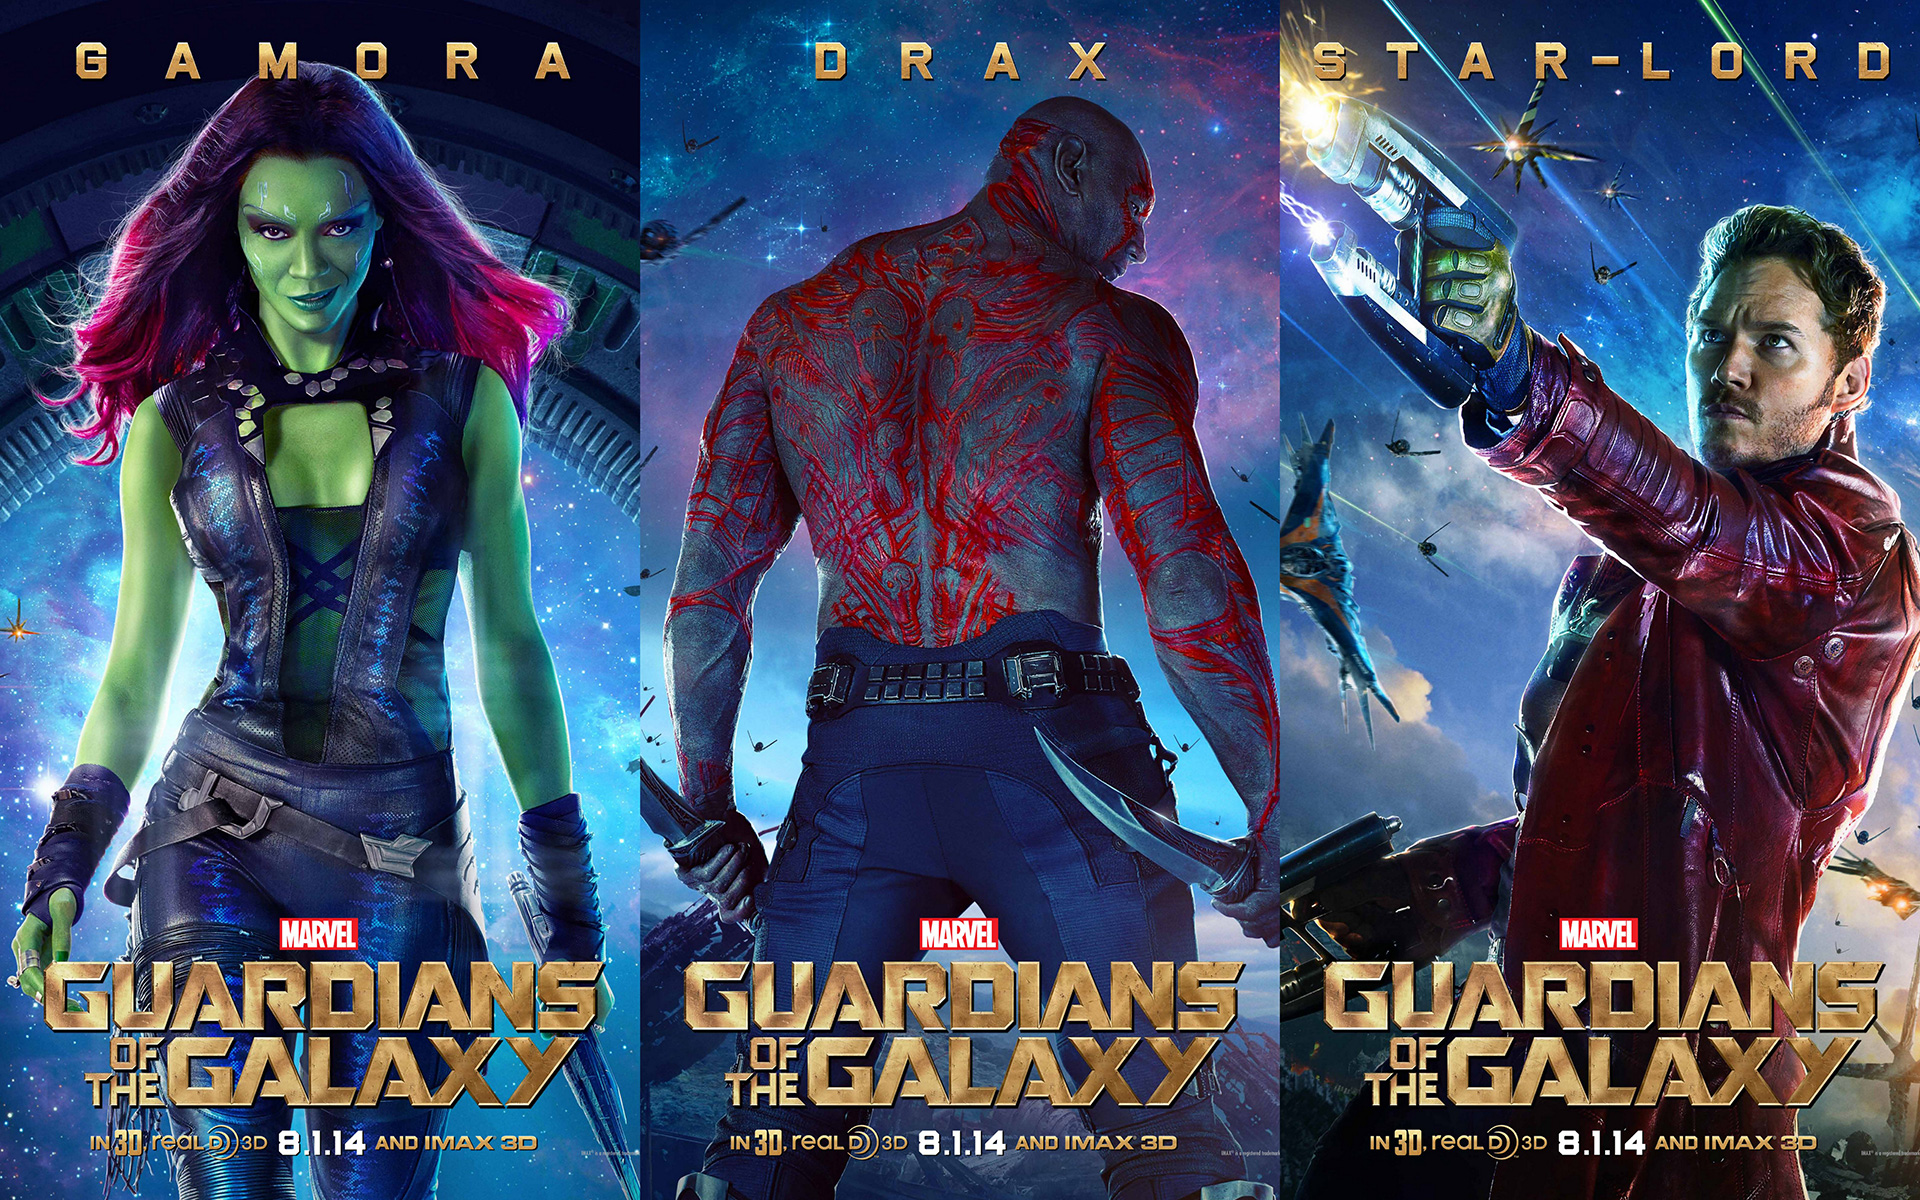 Avengers Worldwide Gross Guardians Of The Galaxy Posters